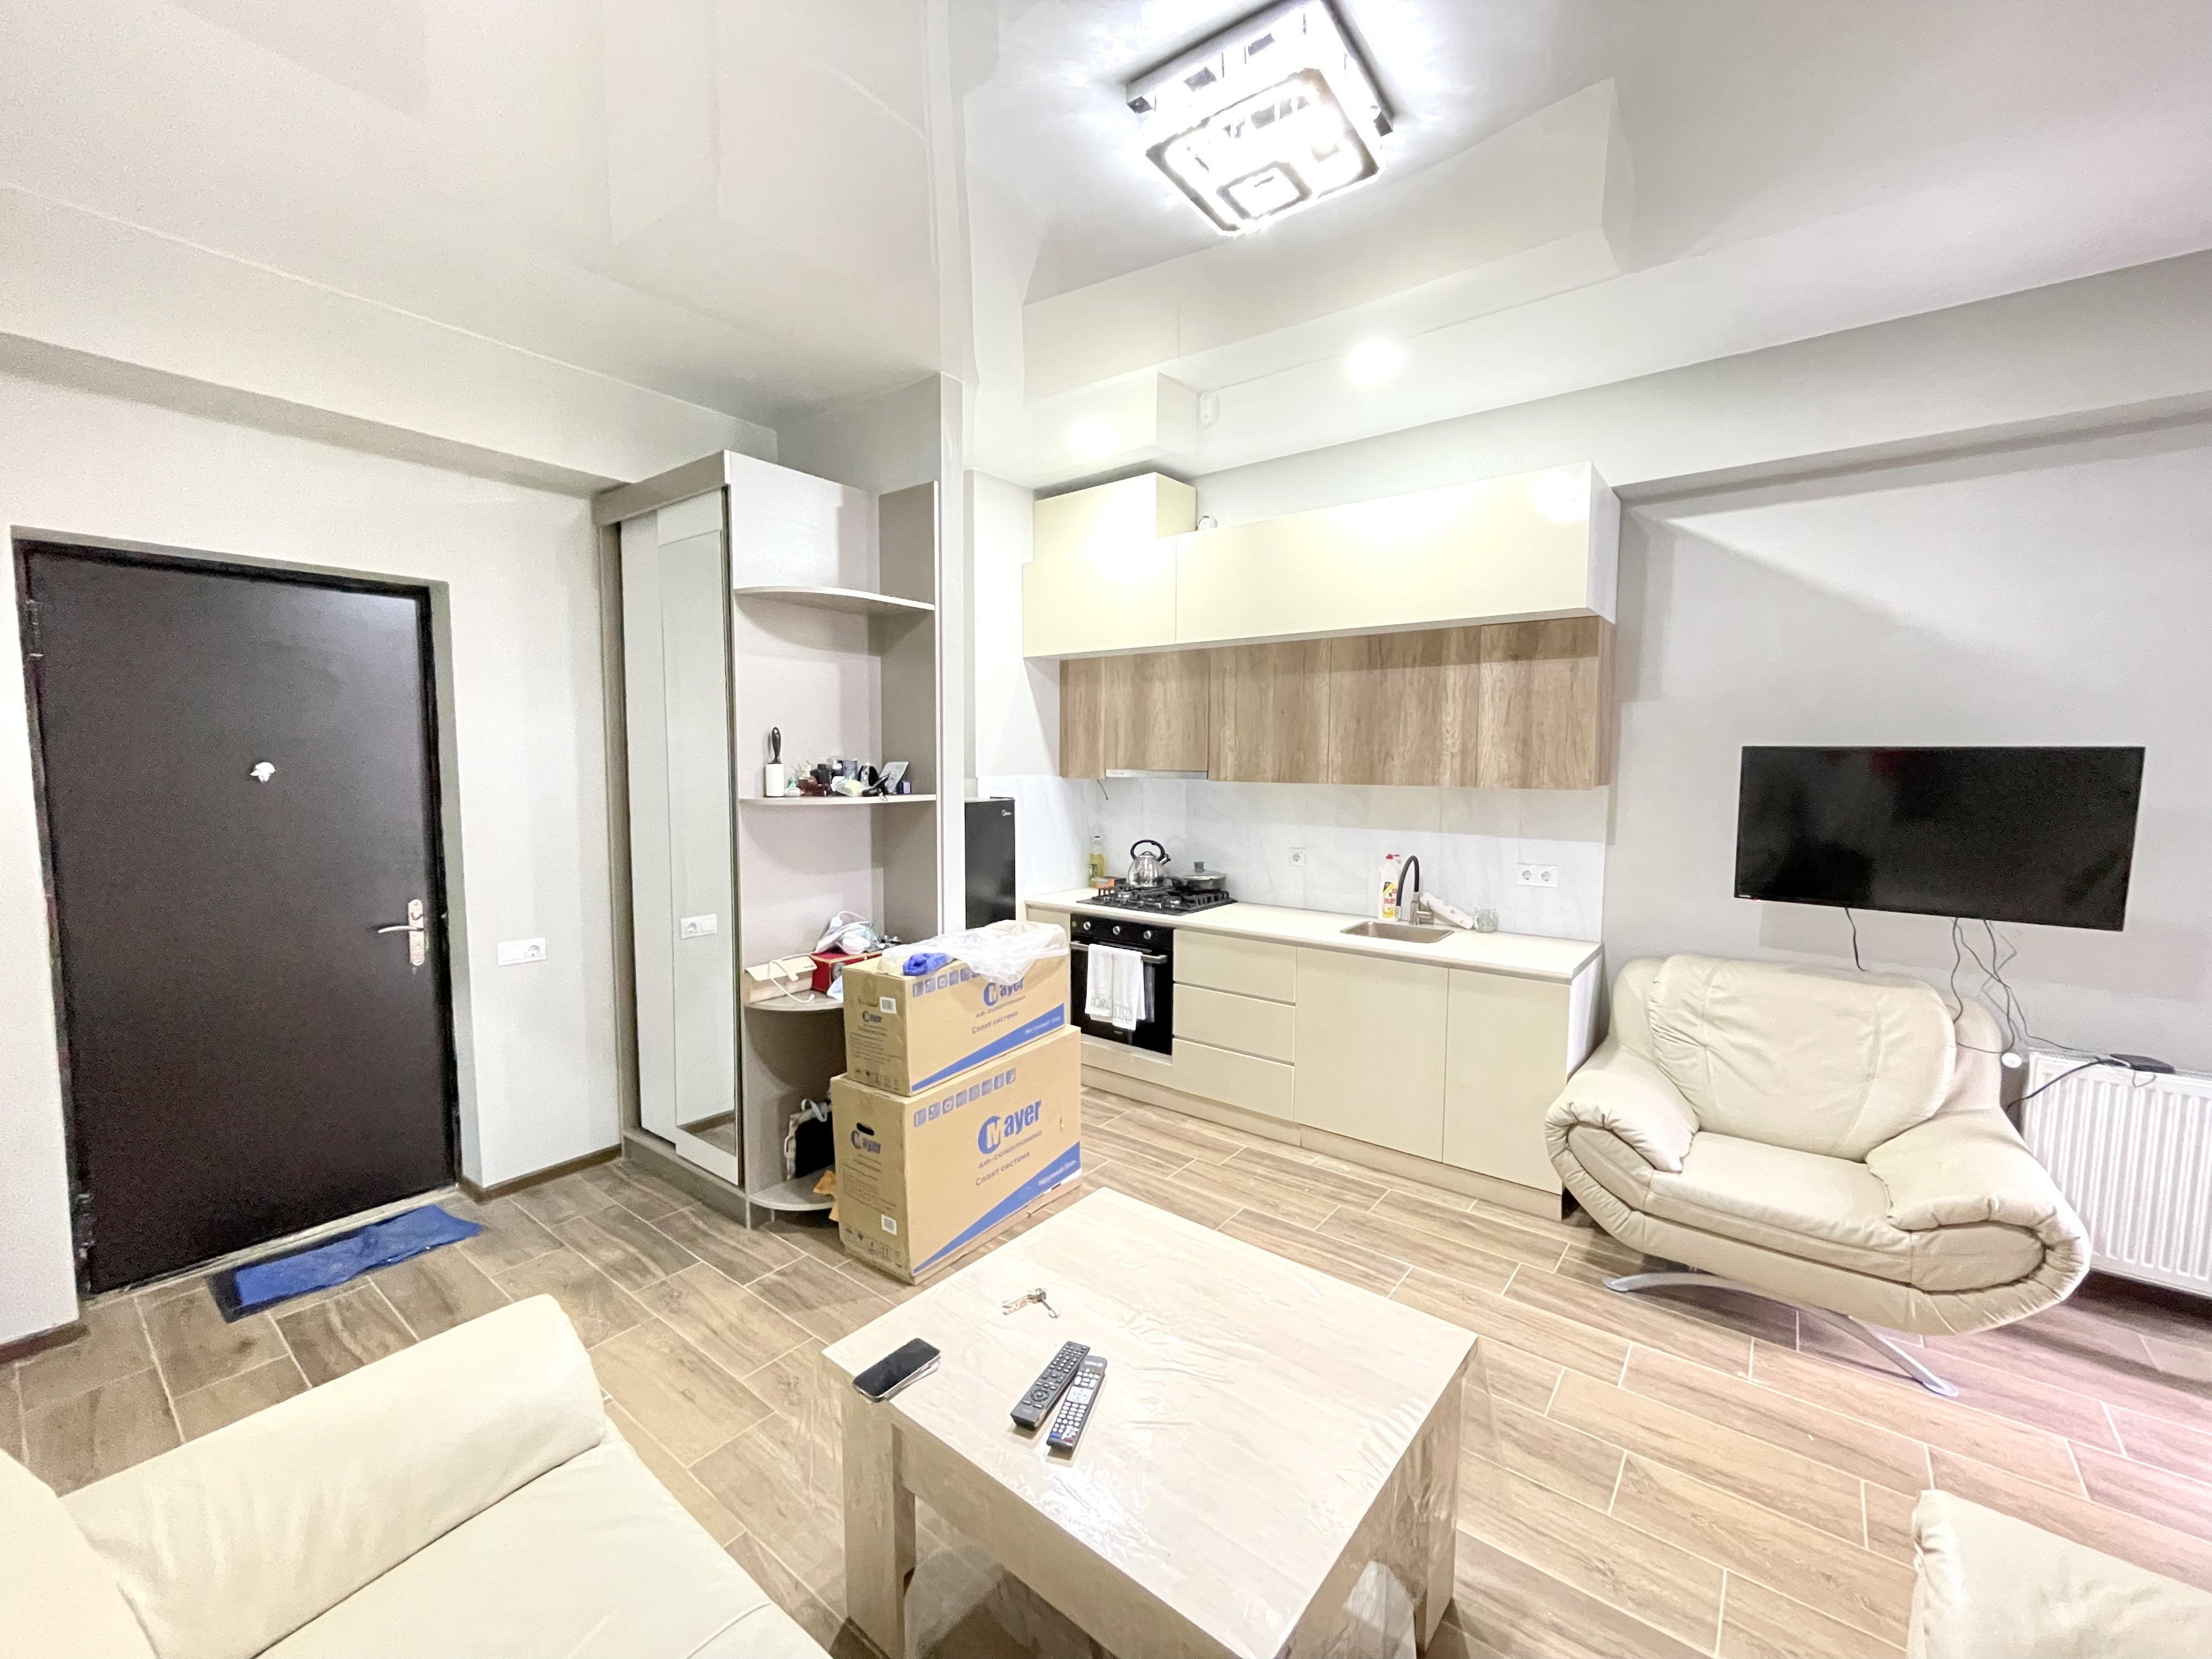 2-Room Brand New Apartment For Rent on Jikia